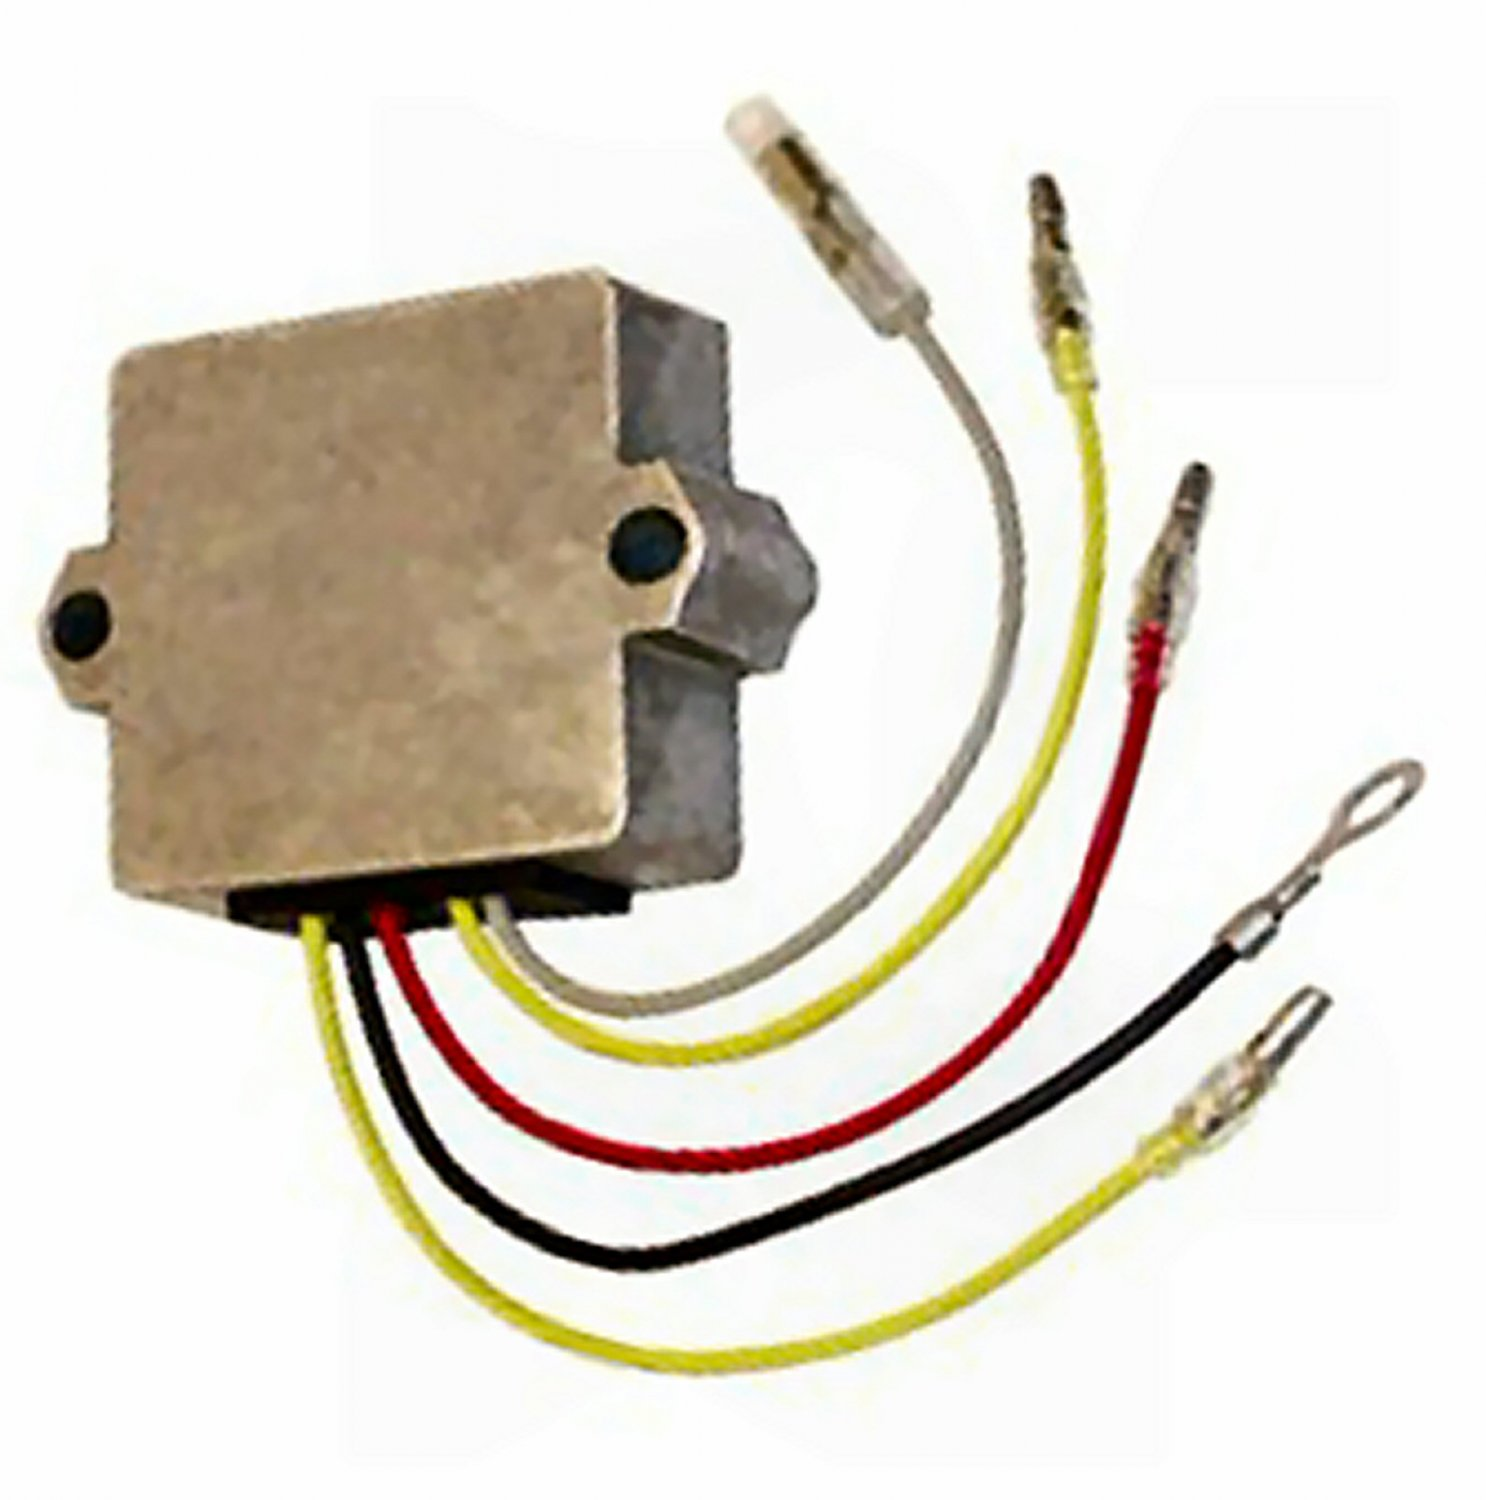 Regulator Rectifier for Mercury Outboards 5 Wire (TM5714)